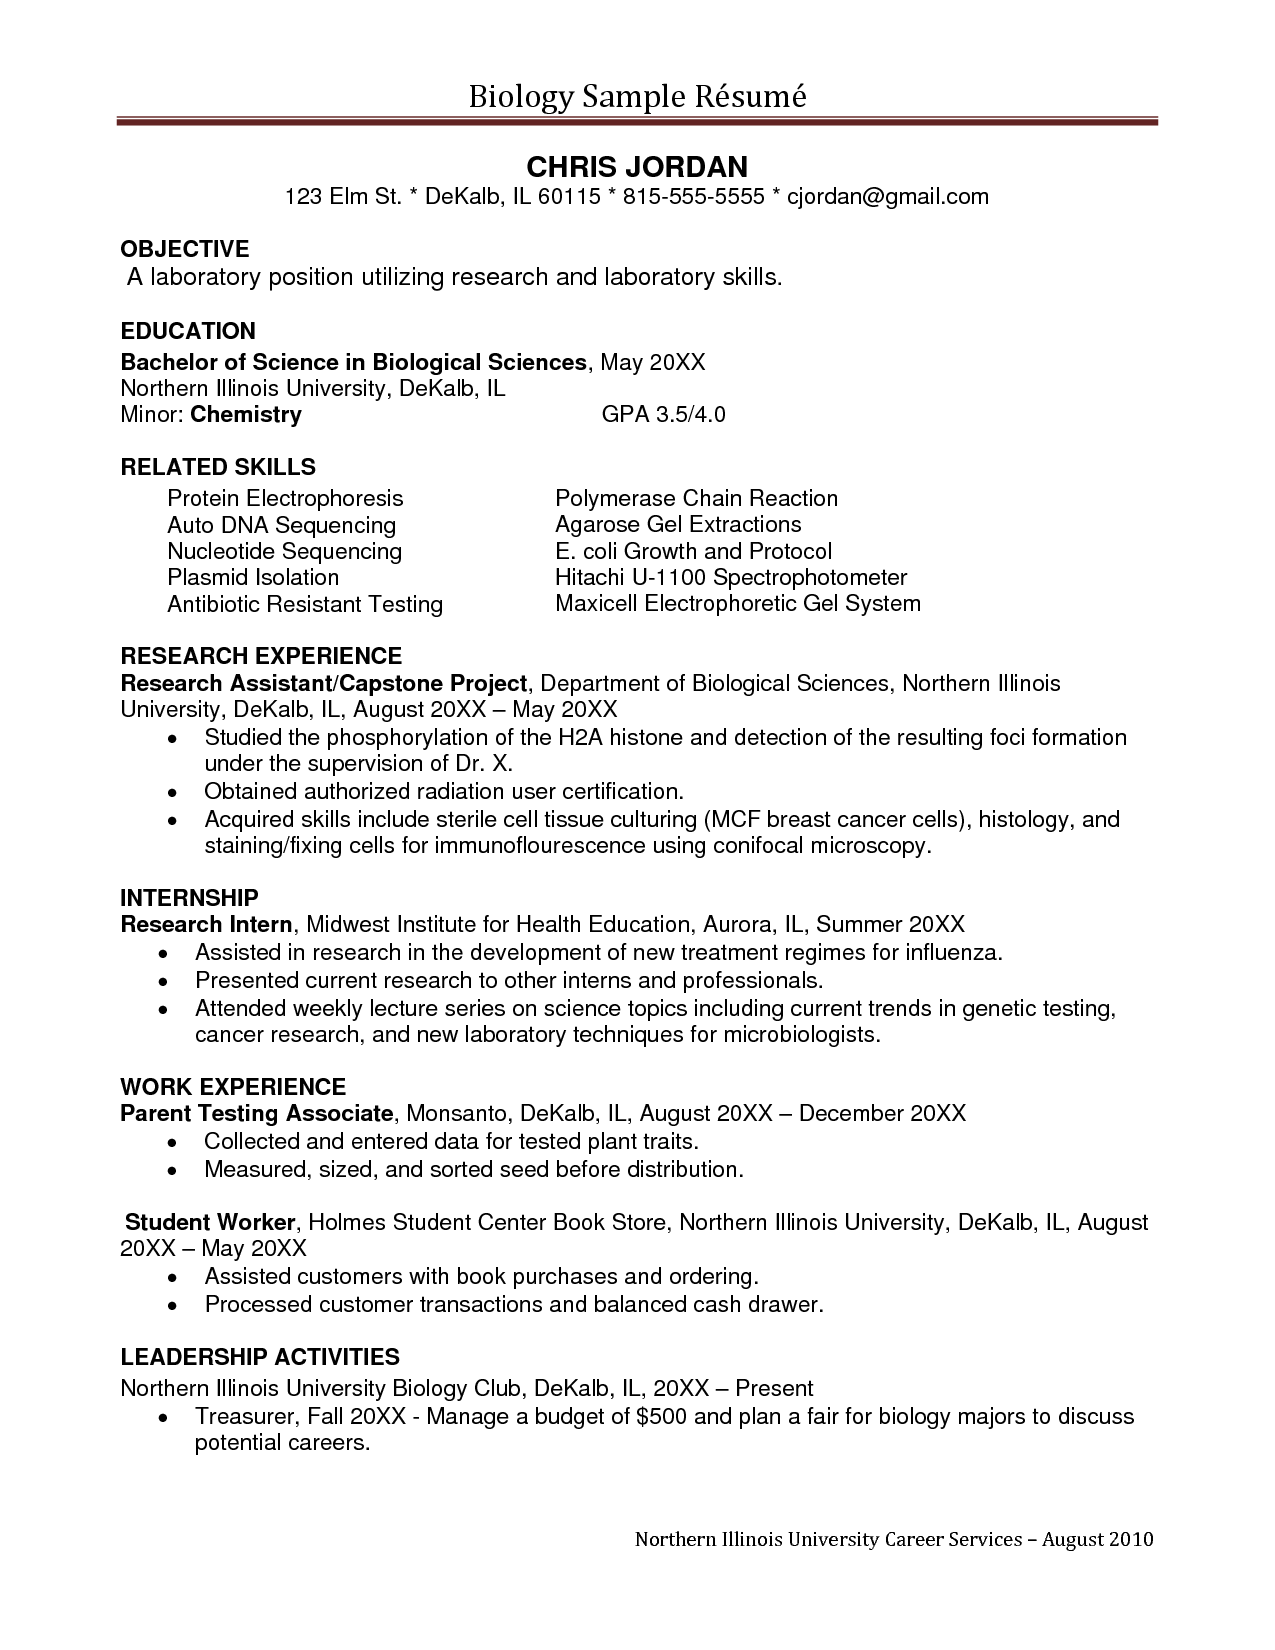 research assistant resume sample objective research assistant resume sample objective admin assistant objective resume sample - Administrative Assistant Resume Objective Sample